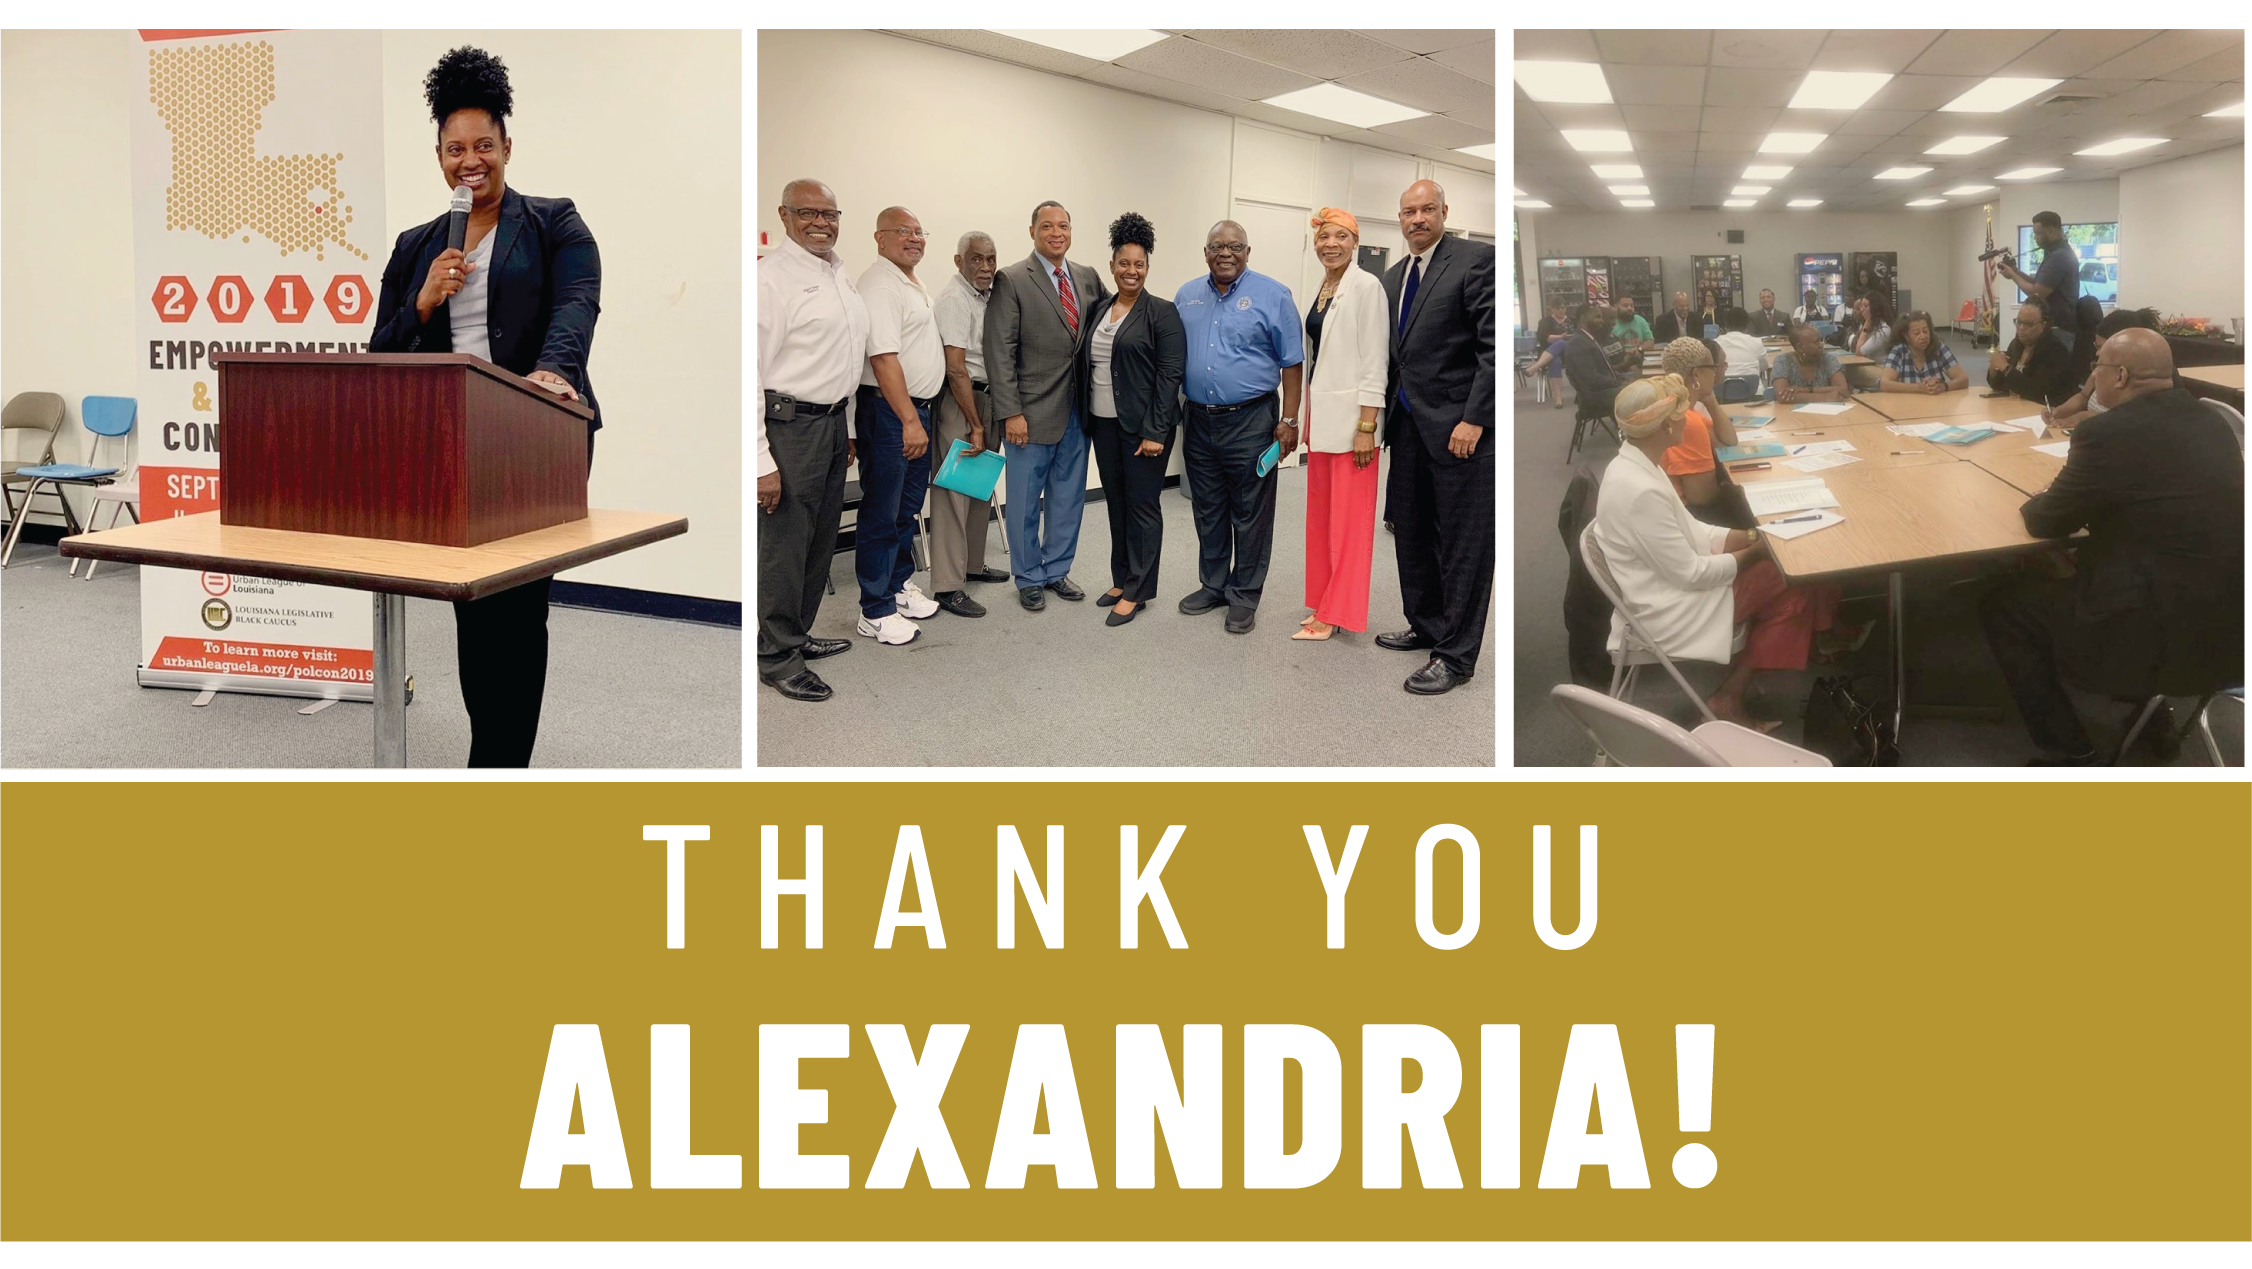 Thank you Alexandria